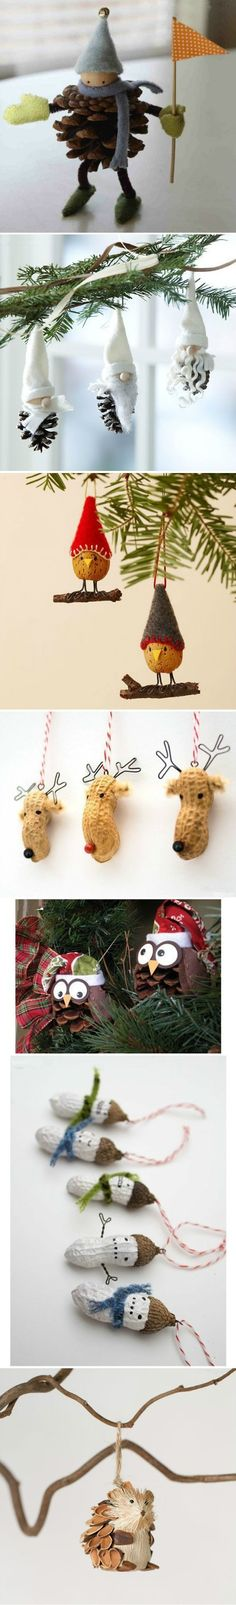 Nutty Christmas ornaments